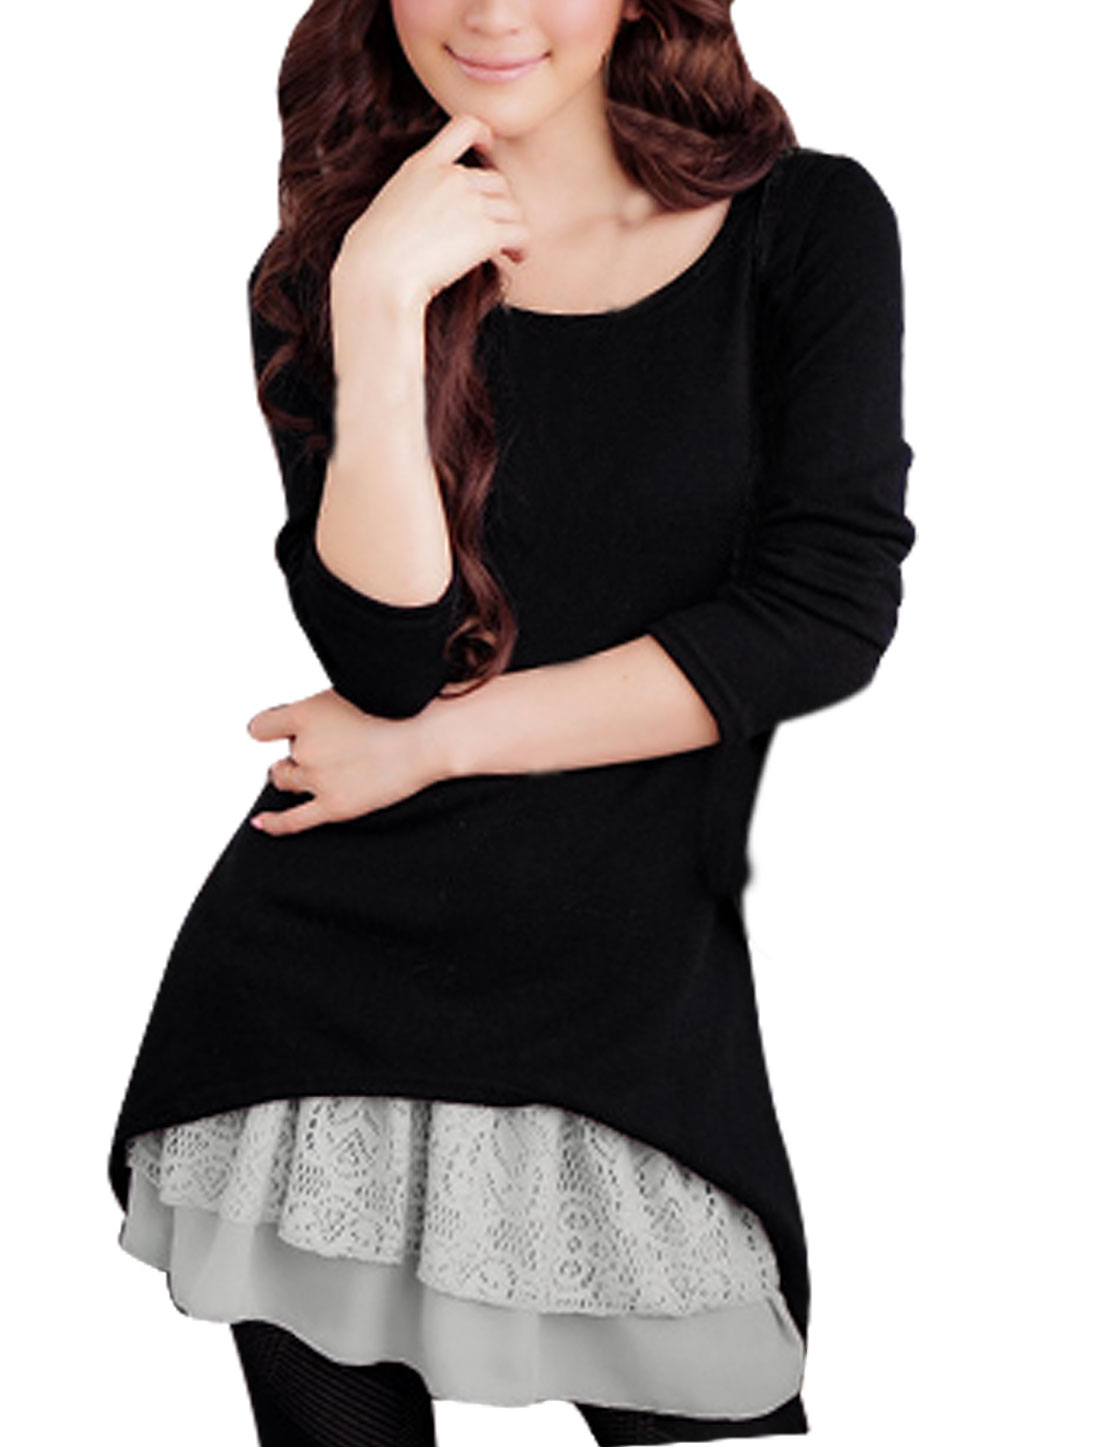 Women Black Long Sleeves Stretchy Shirt w Gray Tank Top XS